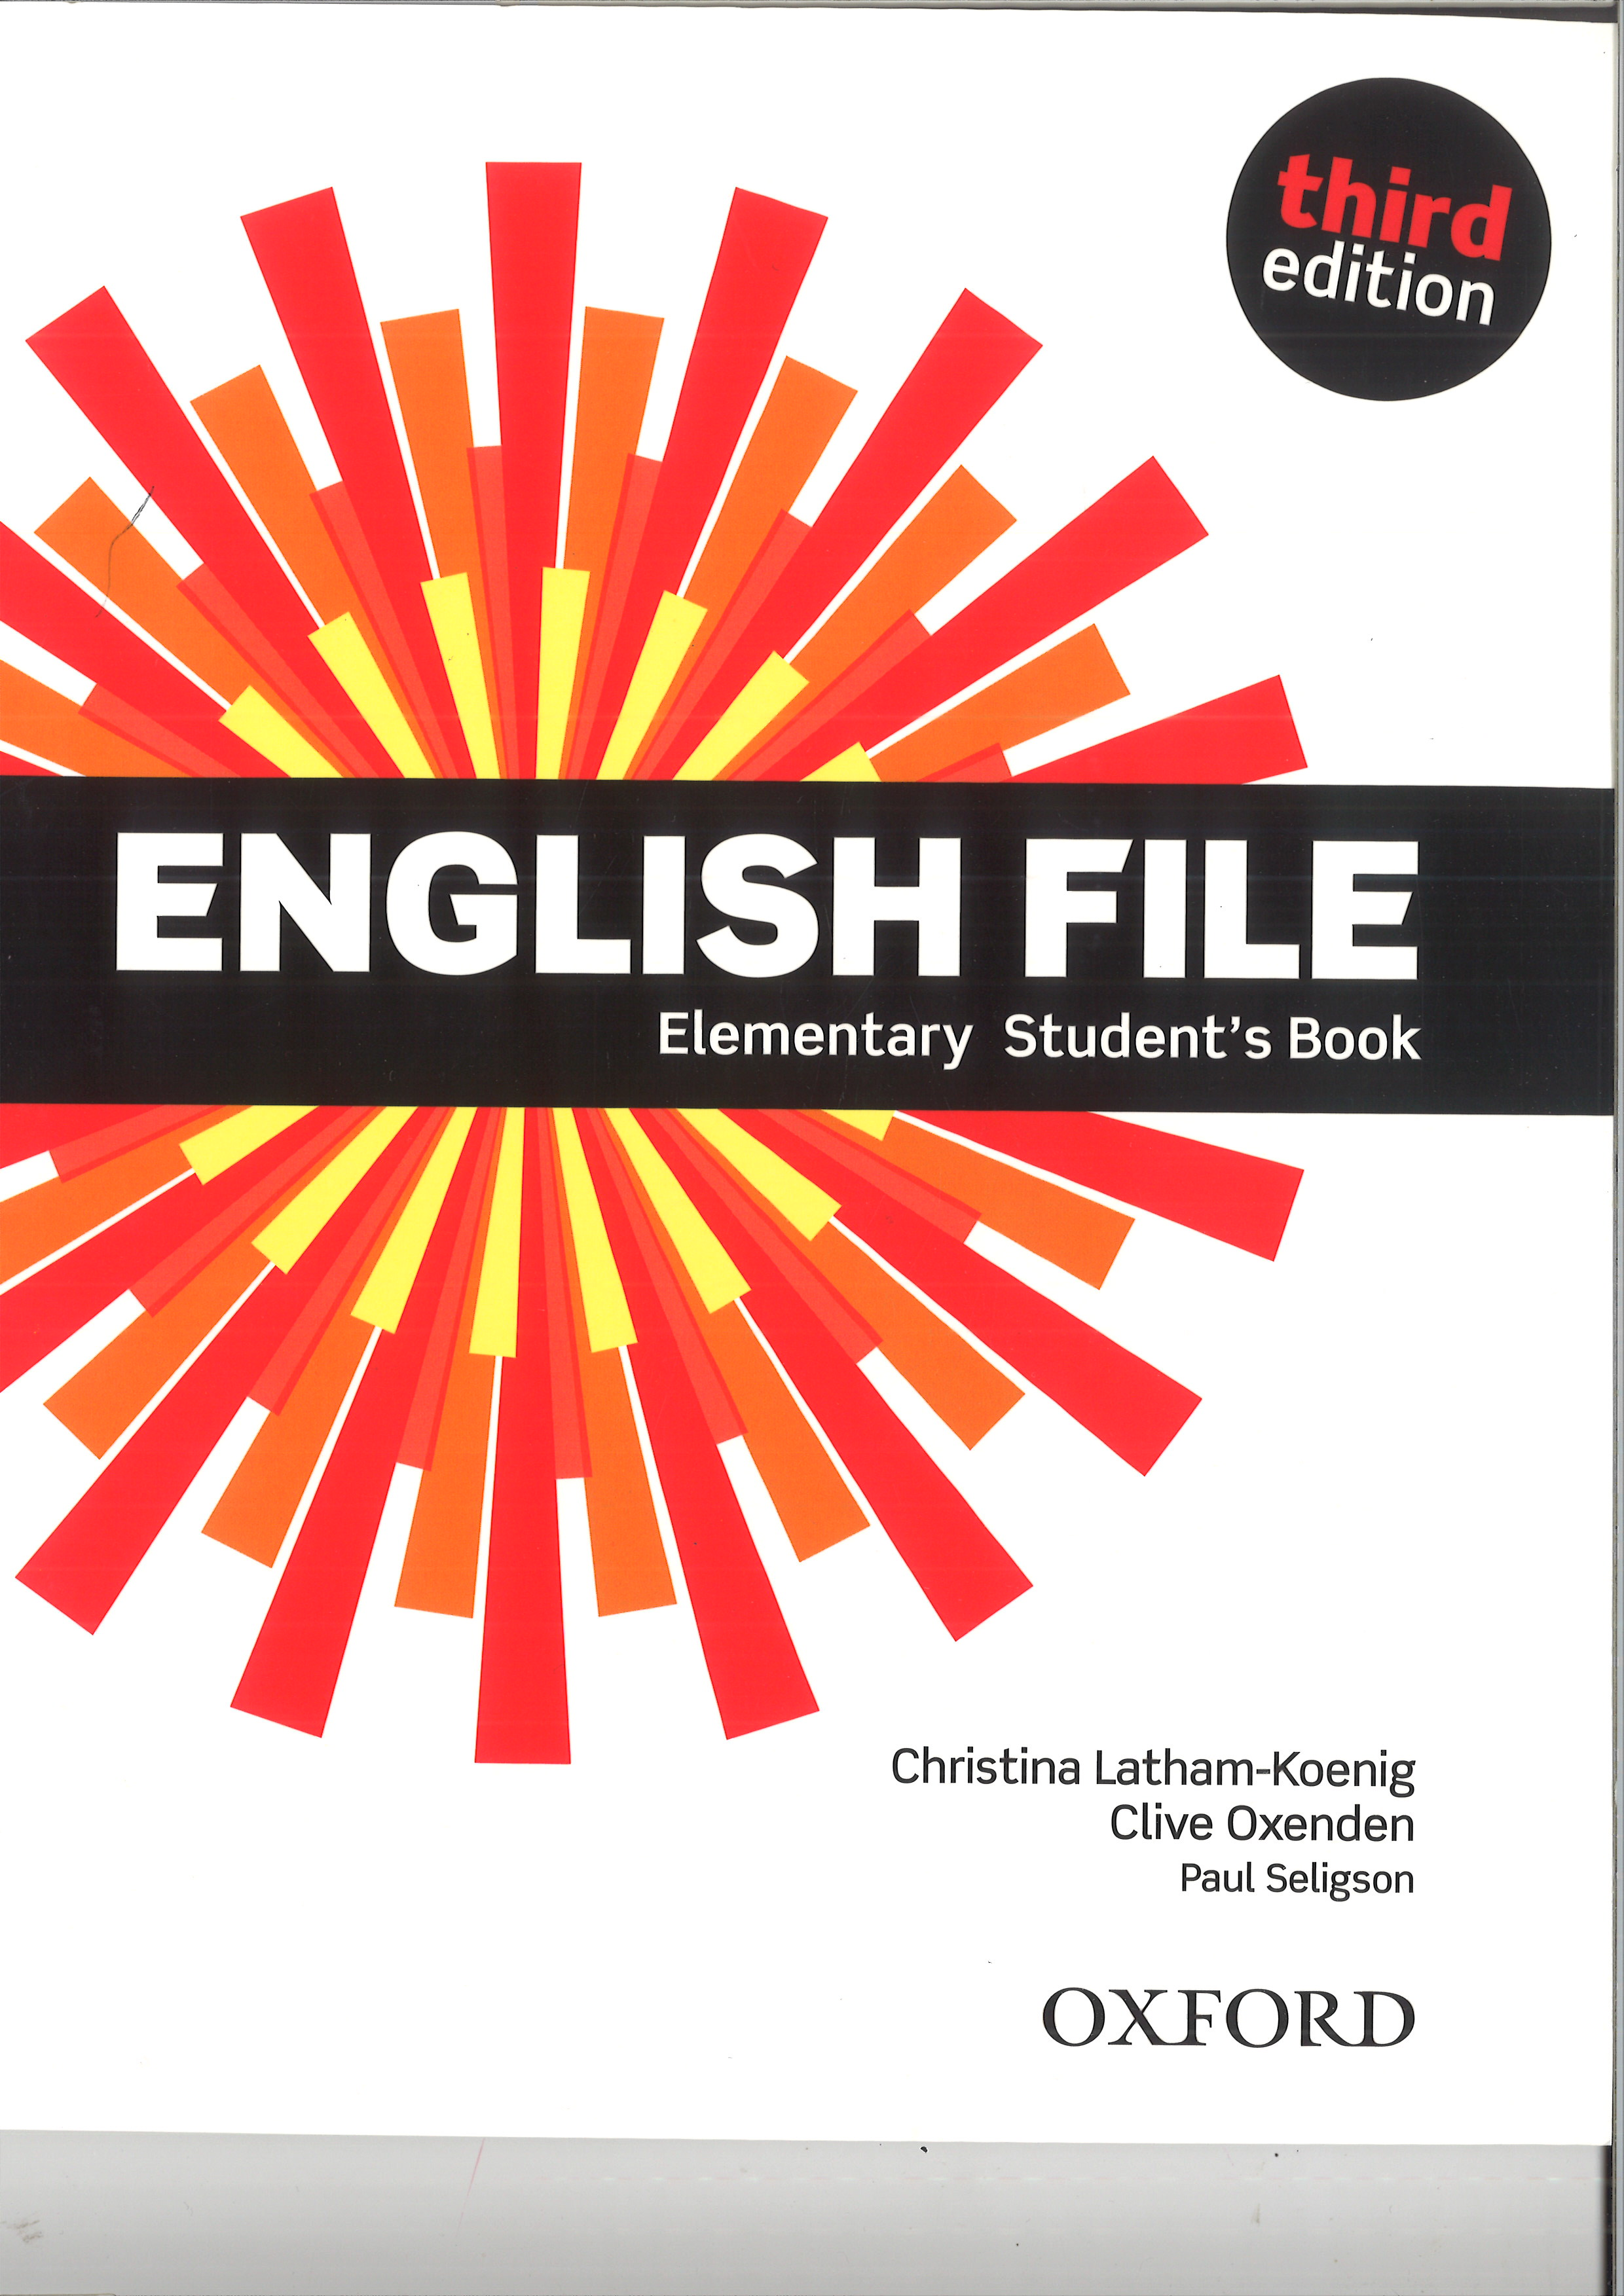 English File 3rd edition elementary SB